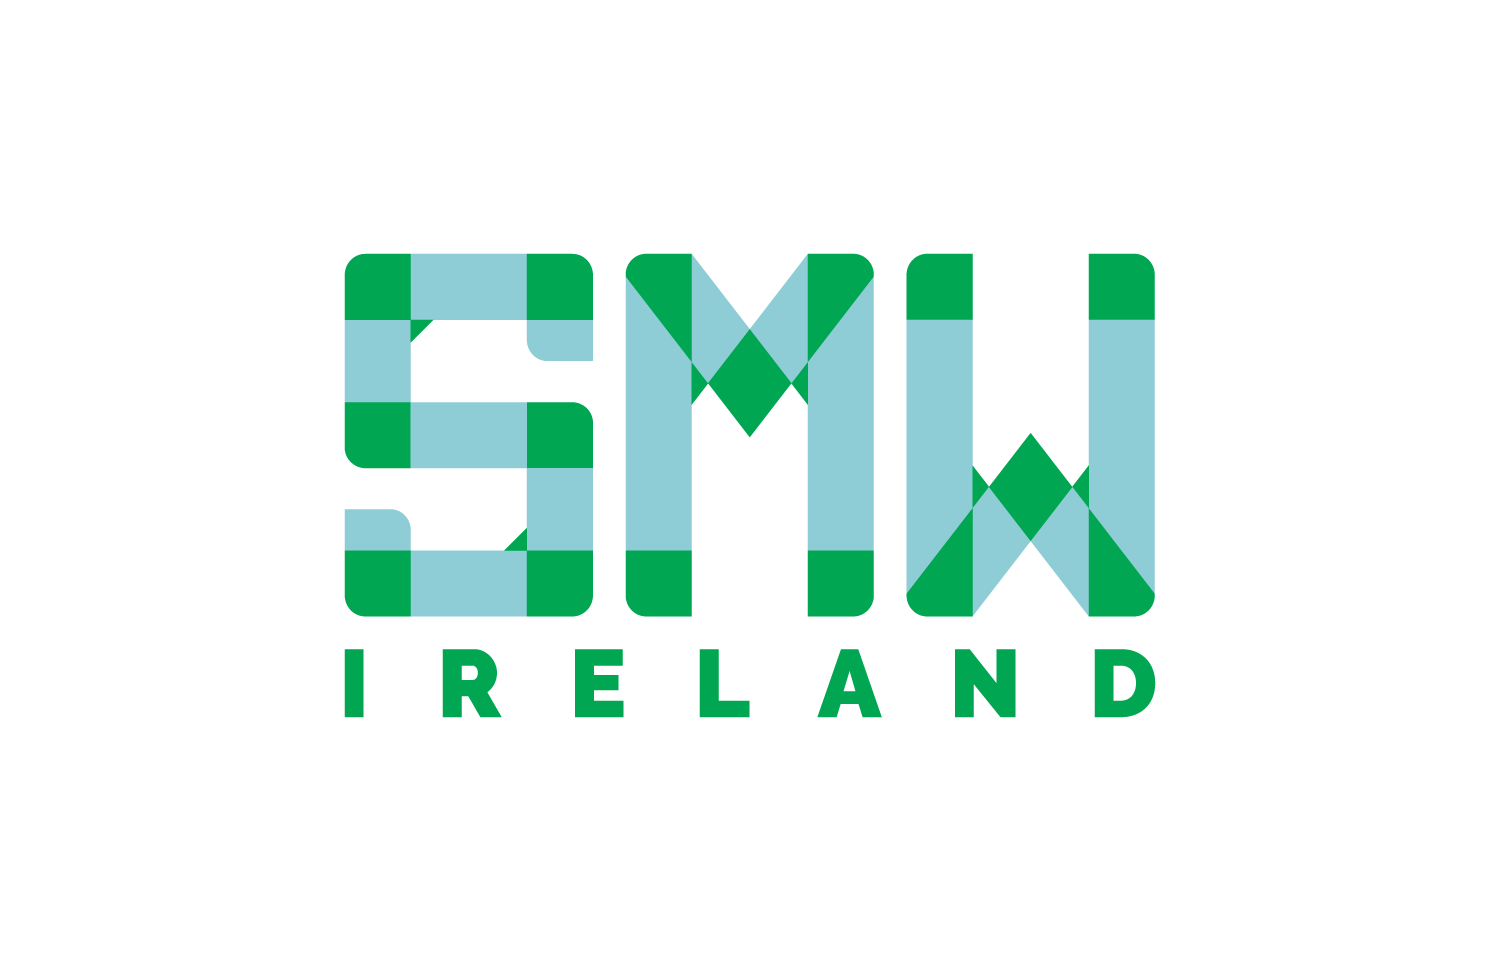 SMW Ireland logo design green and blue